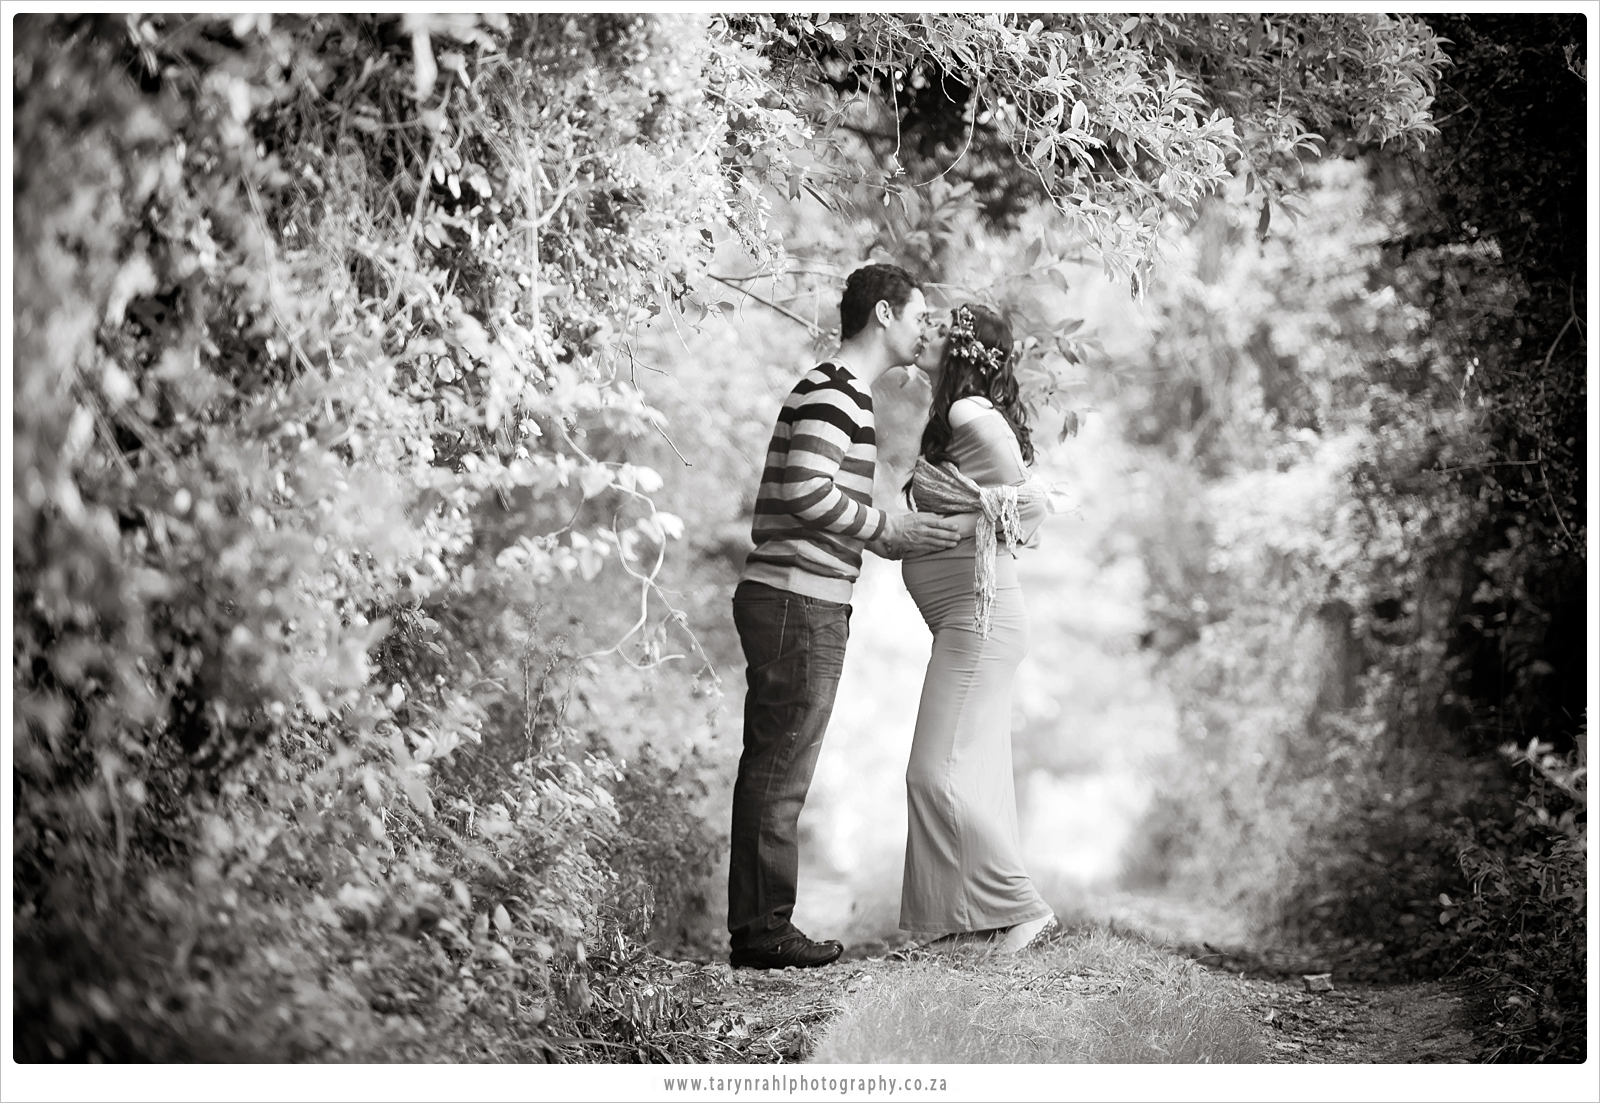 Tracy-lee and Michael | baby-bump